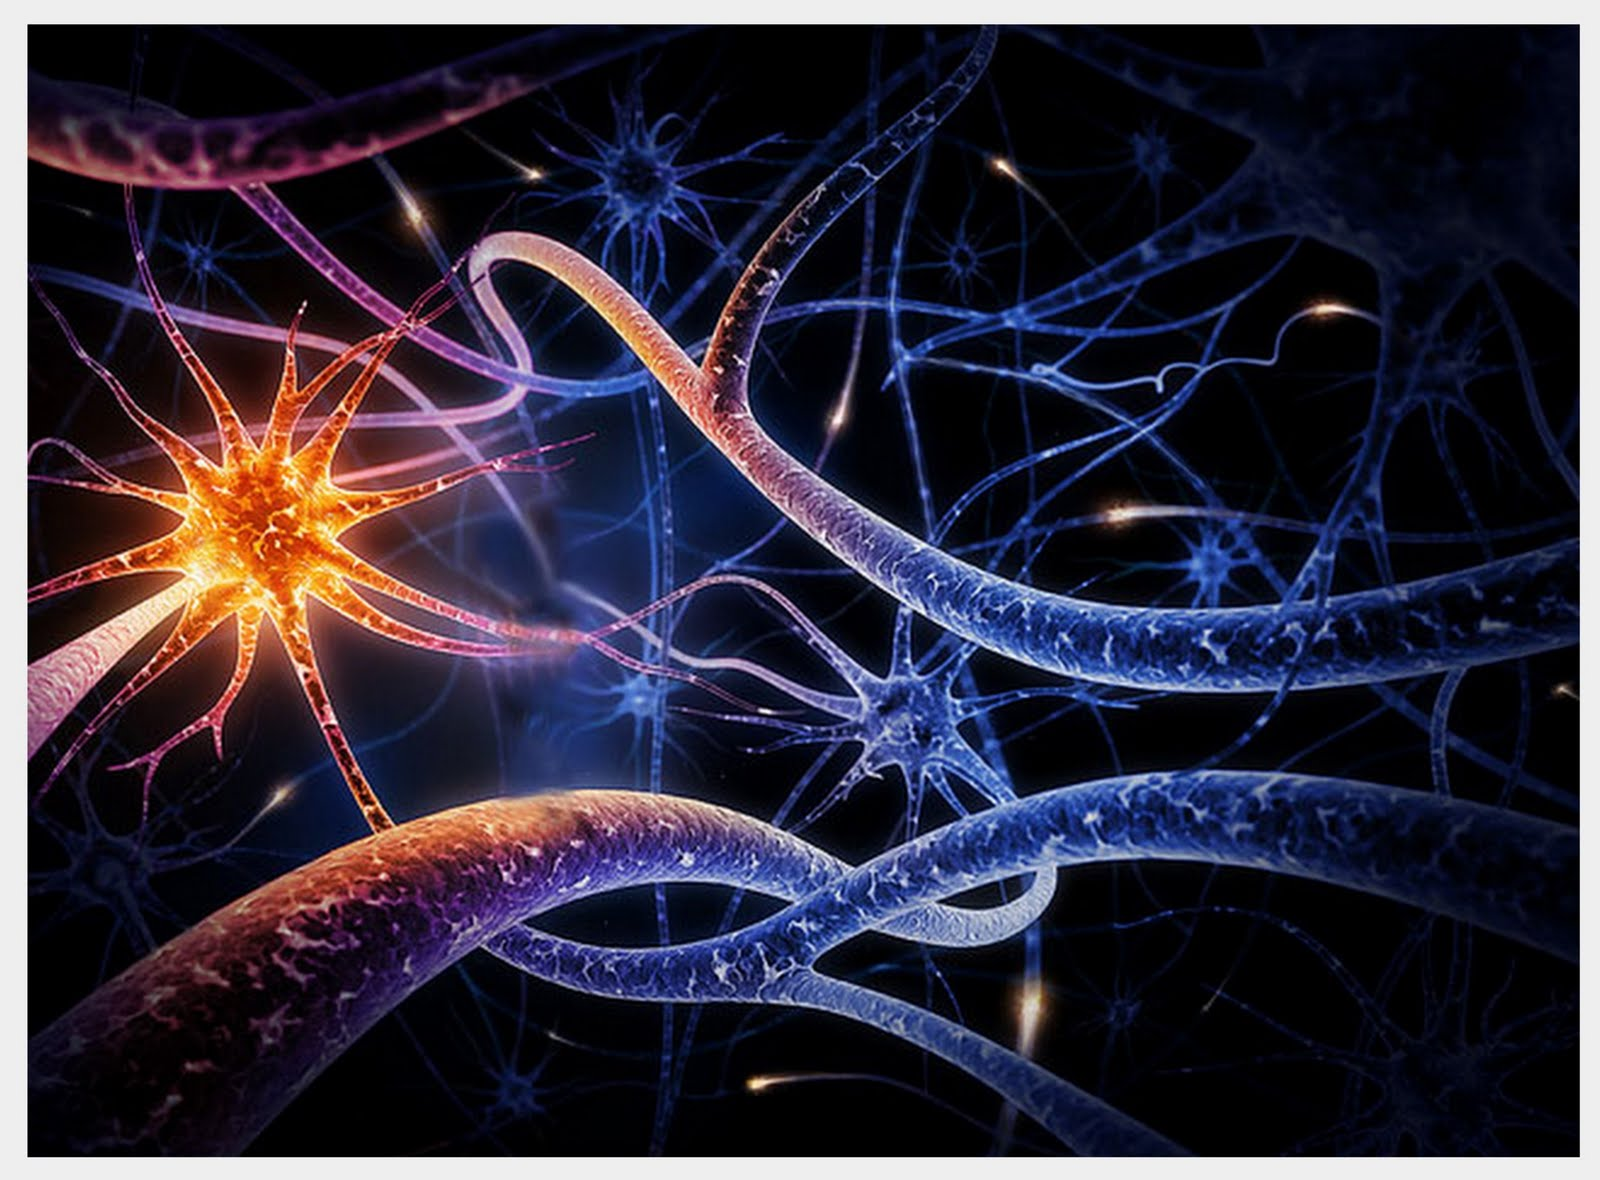 Neuropeptides are small protein-like molecules ( peptides ) used by neurons to communicate with each other.